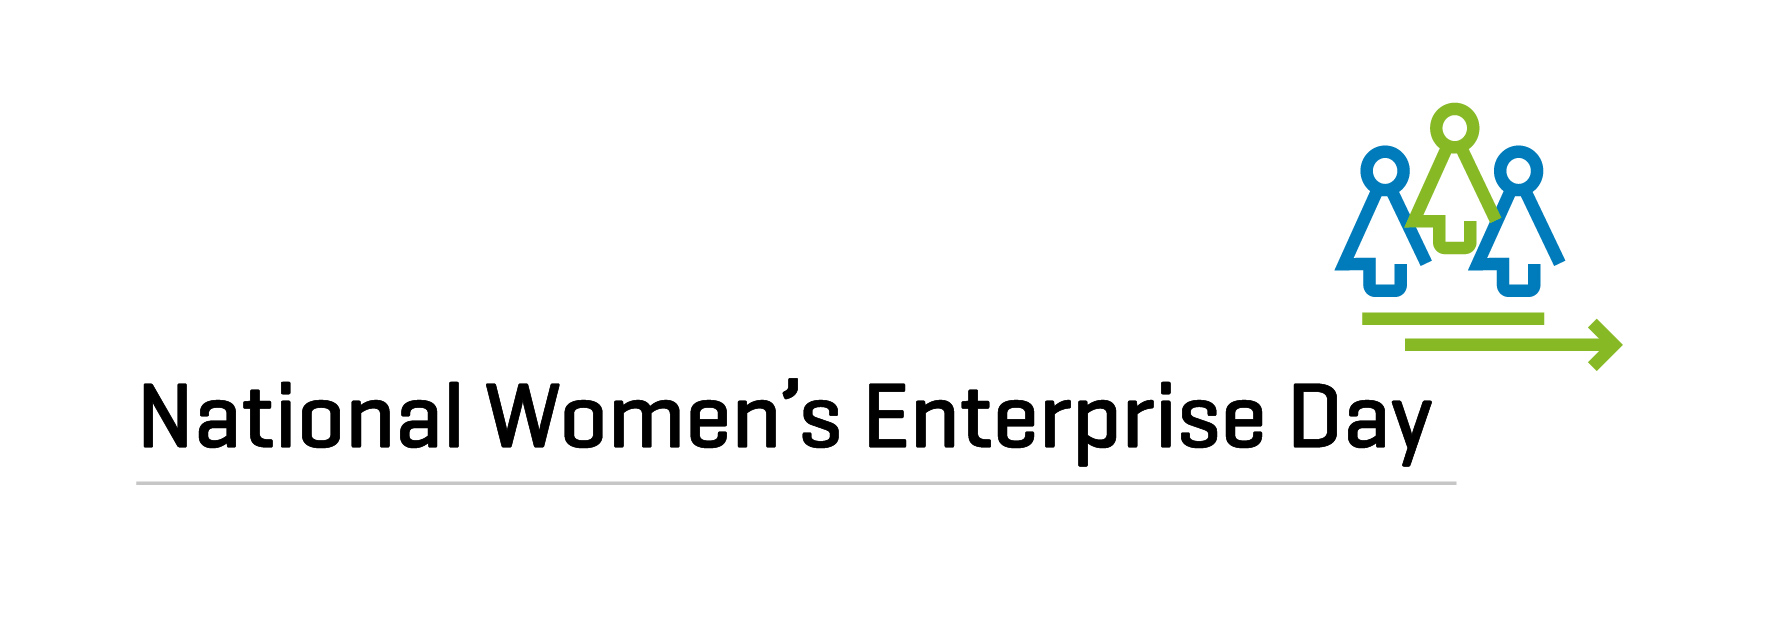 National Women's Enterprise Day 2018 Logo